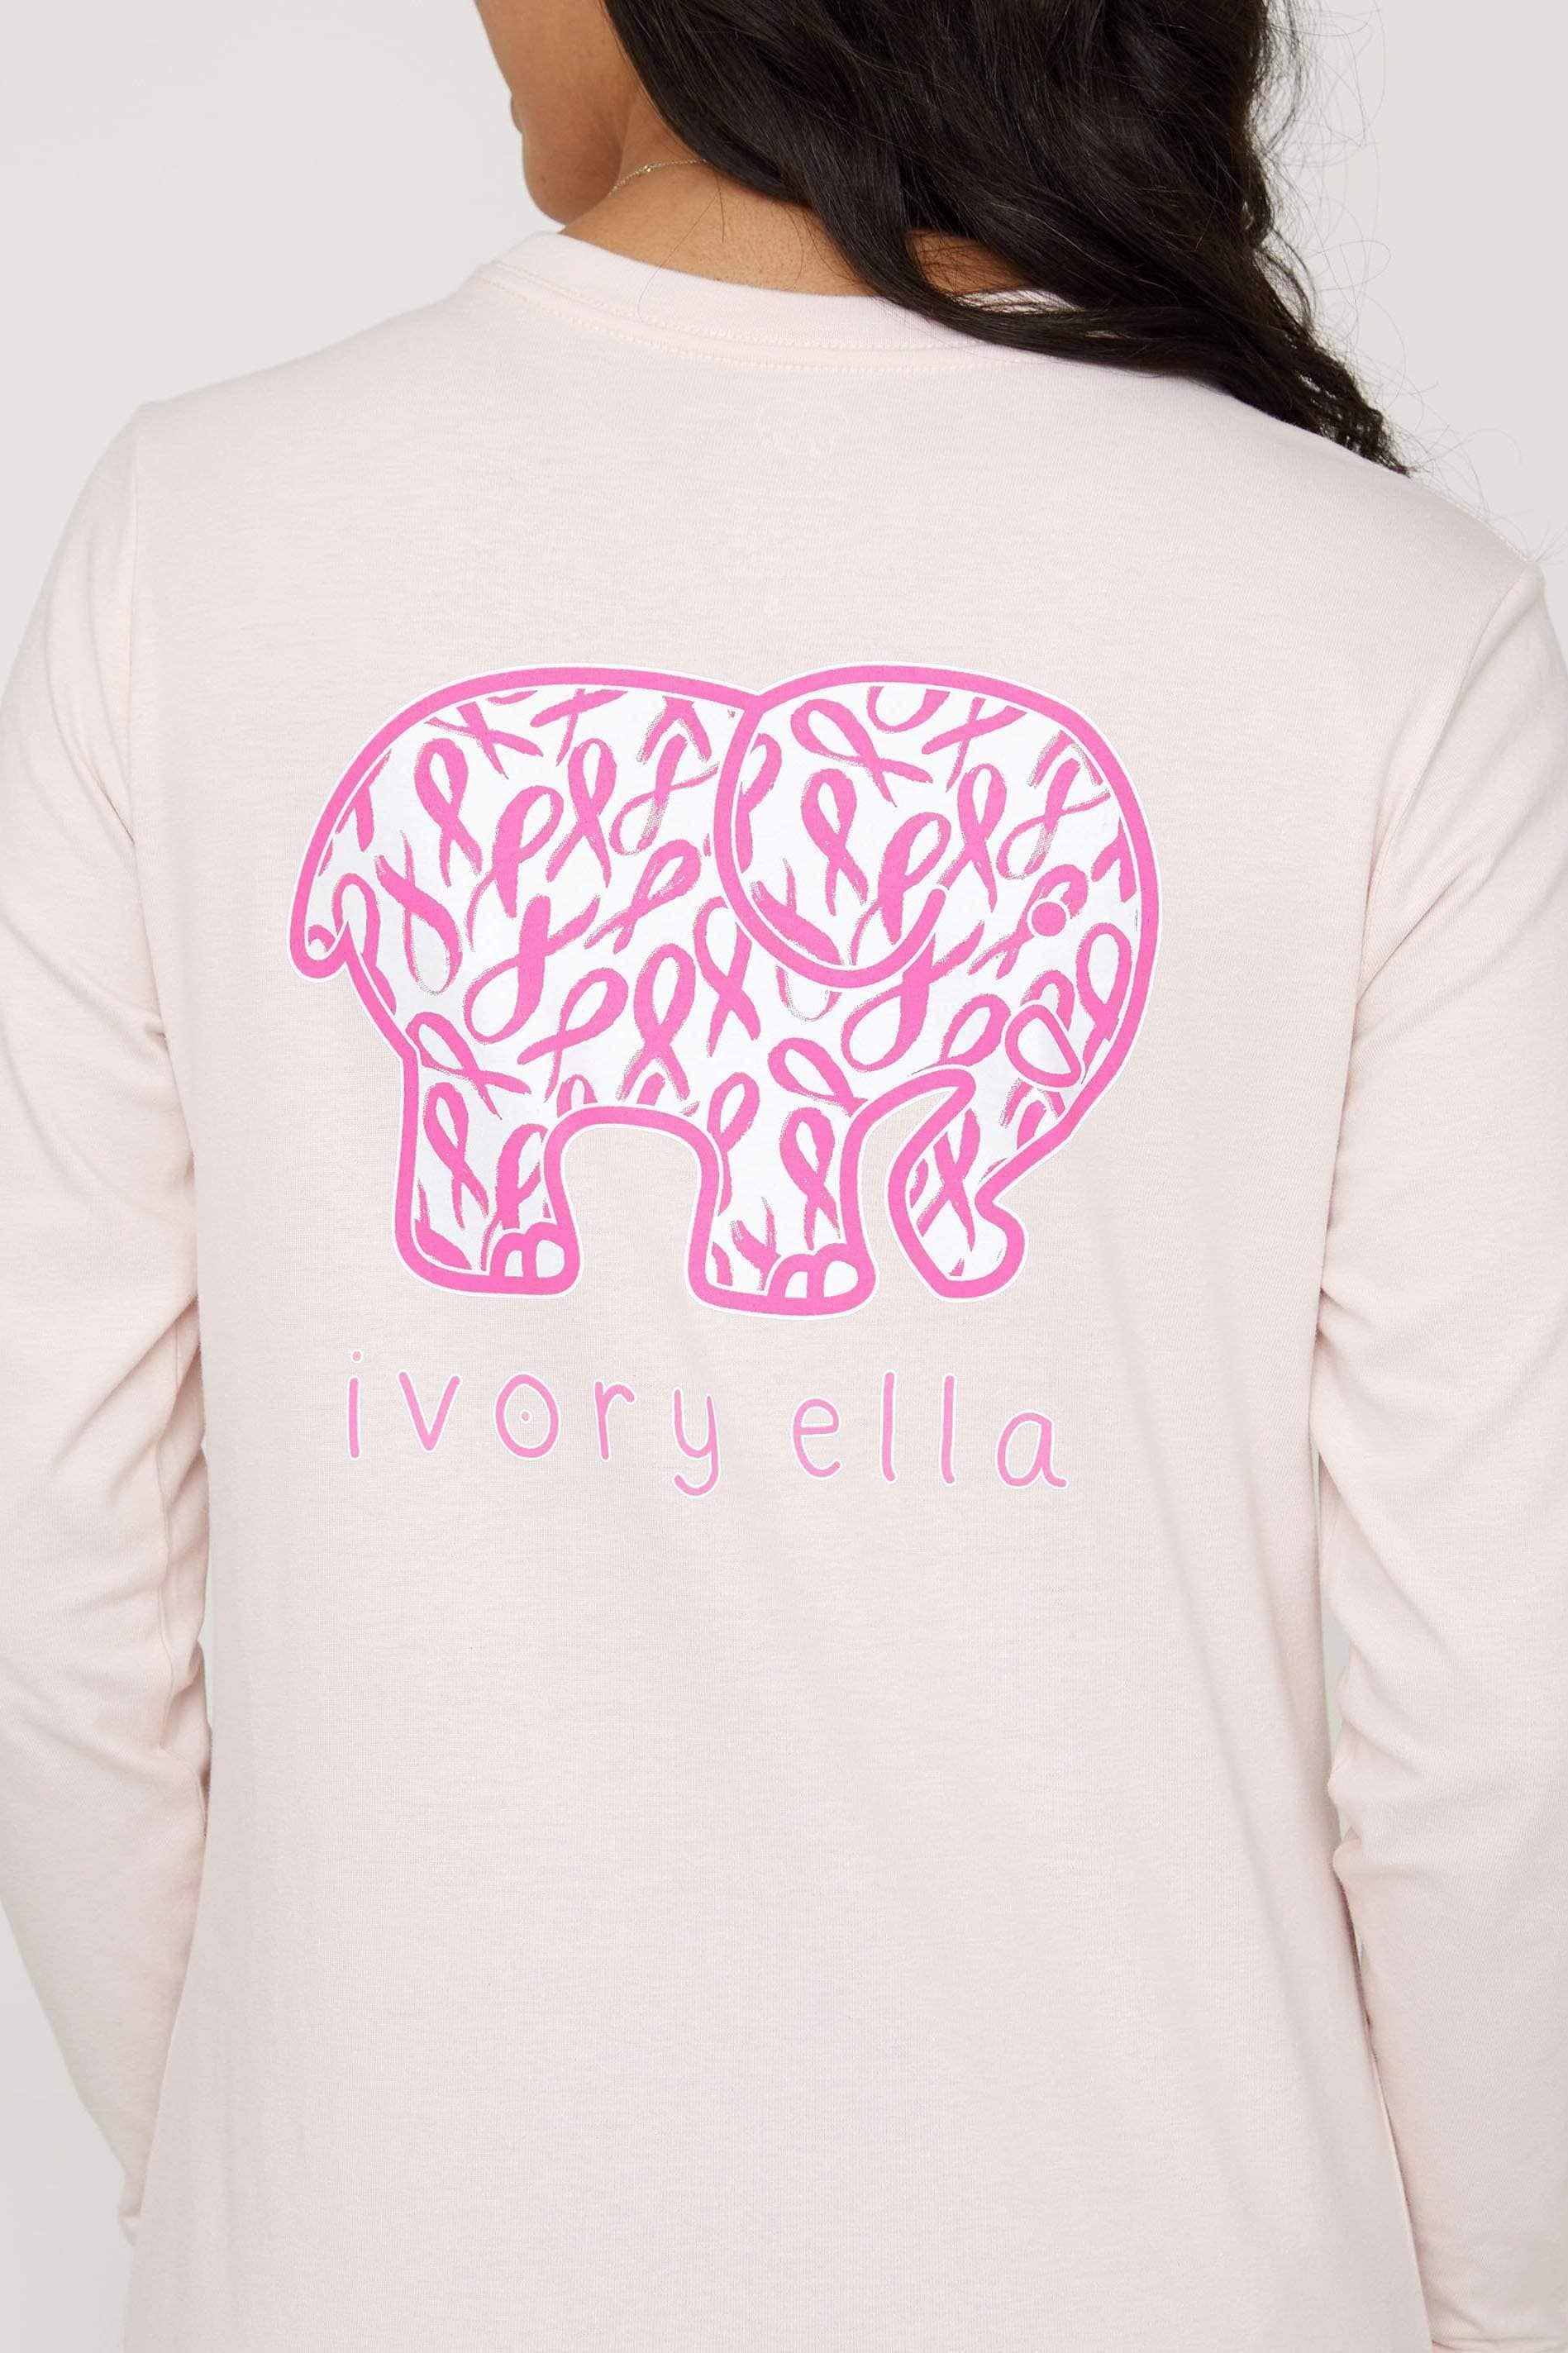 Believe in Pink Ella Tee - Ivory Ella - Women's Long Sleeve Shirts